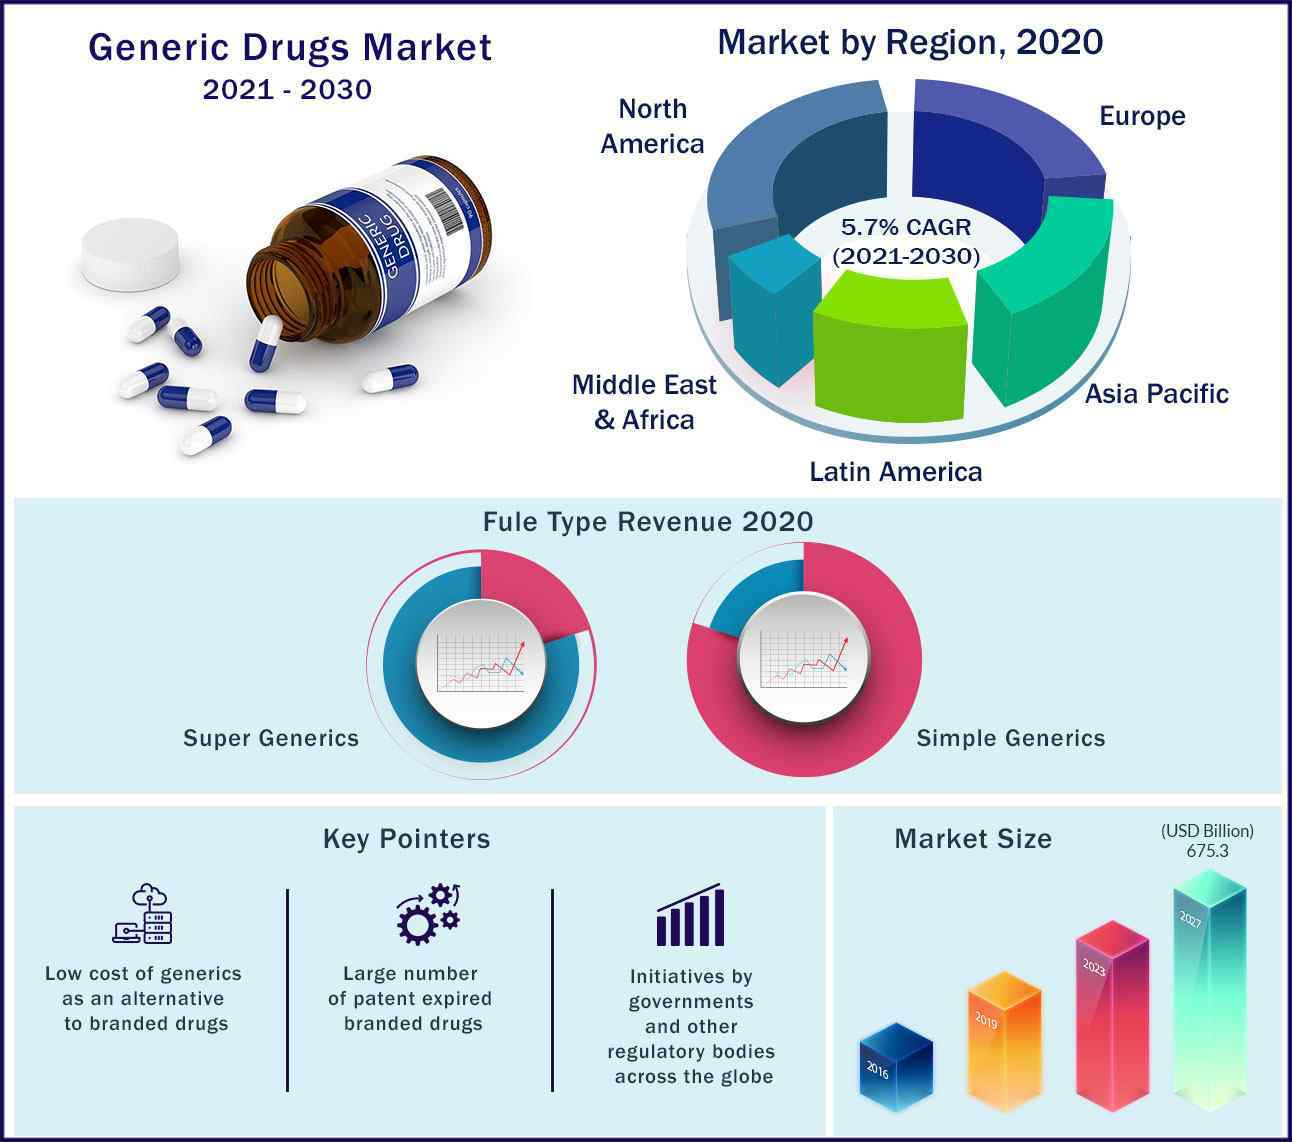 Global Generic Drugs Market 2021 to 2030